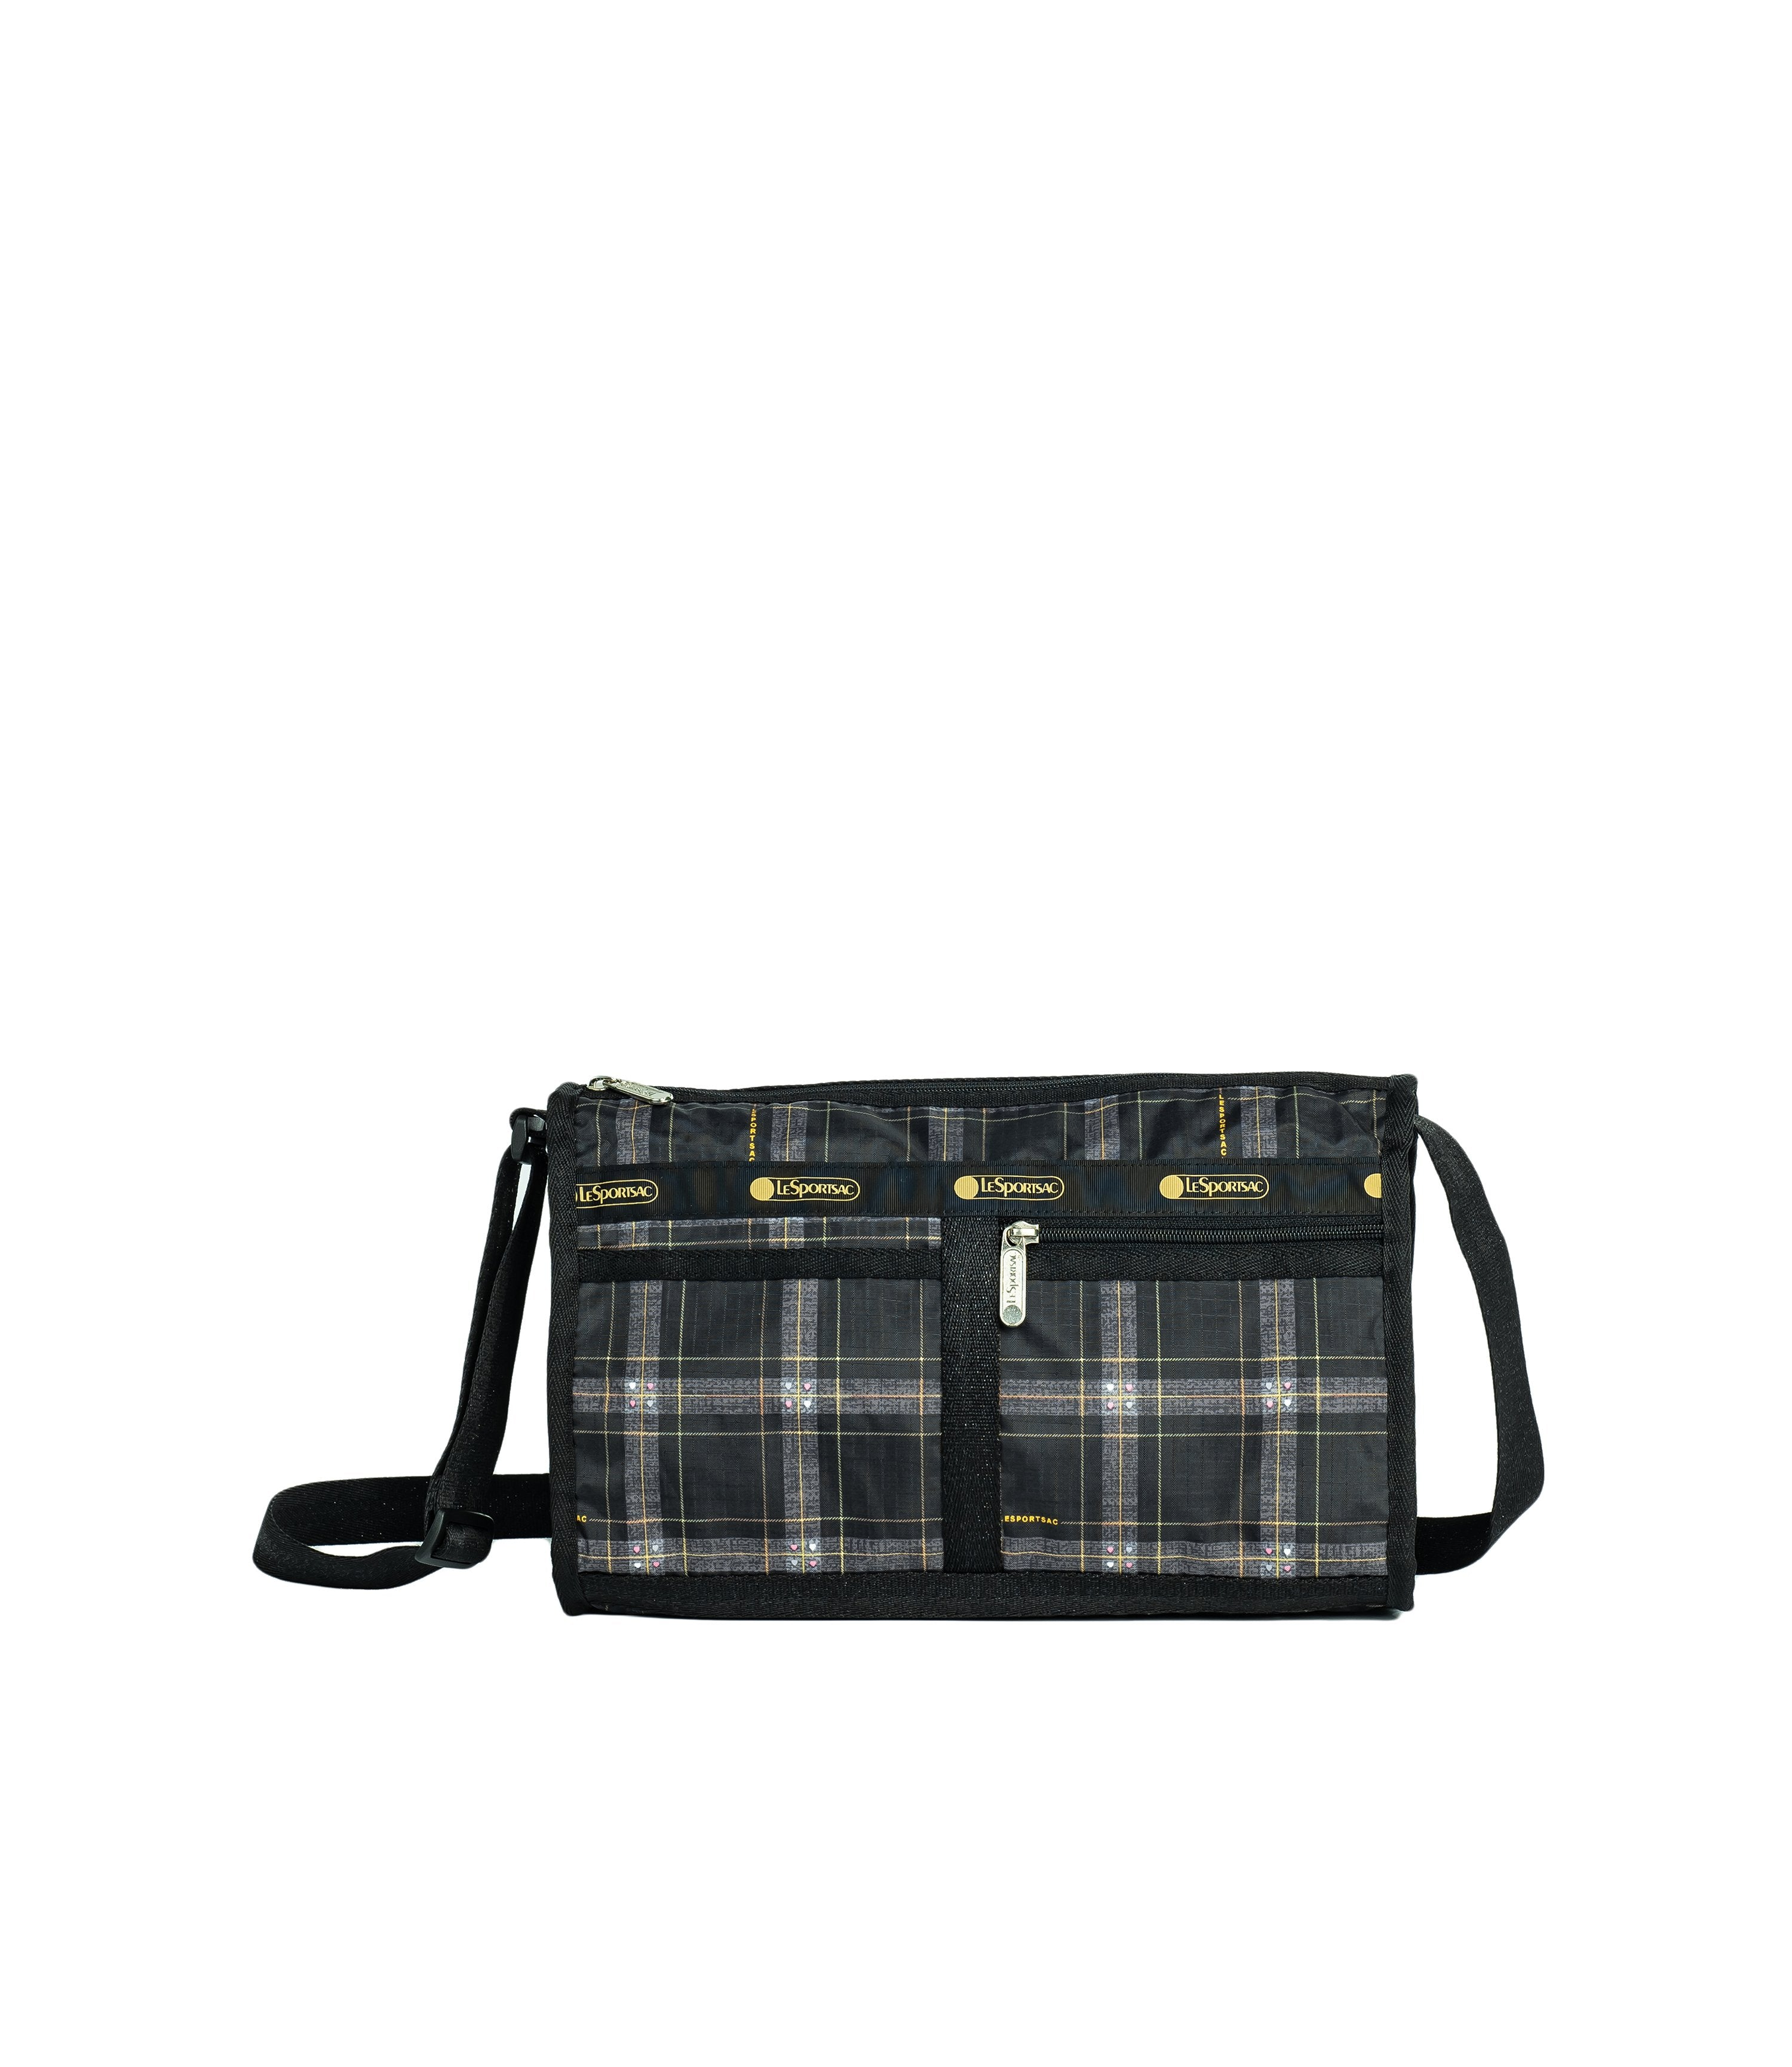 LeSportsac - Handbags - Deluxe Shoulder Satchel - Sweet Plaid Noir print